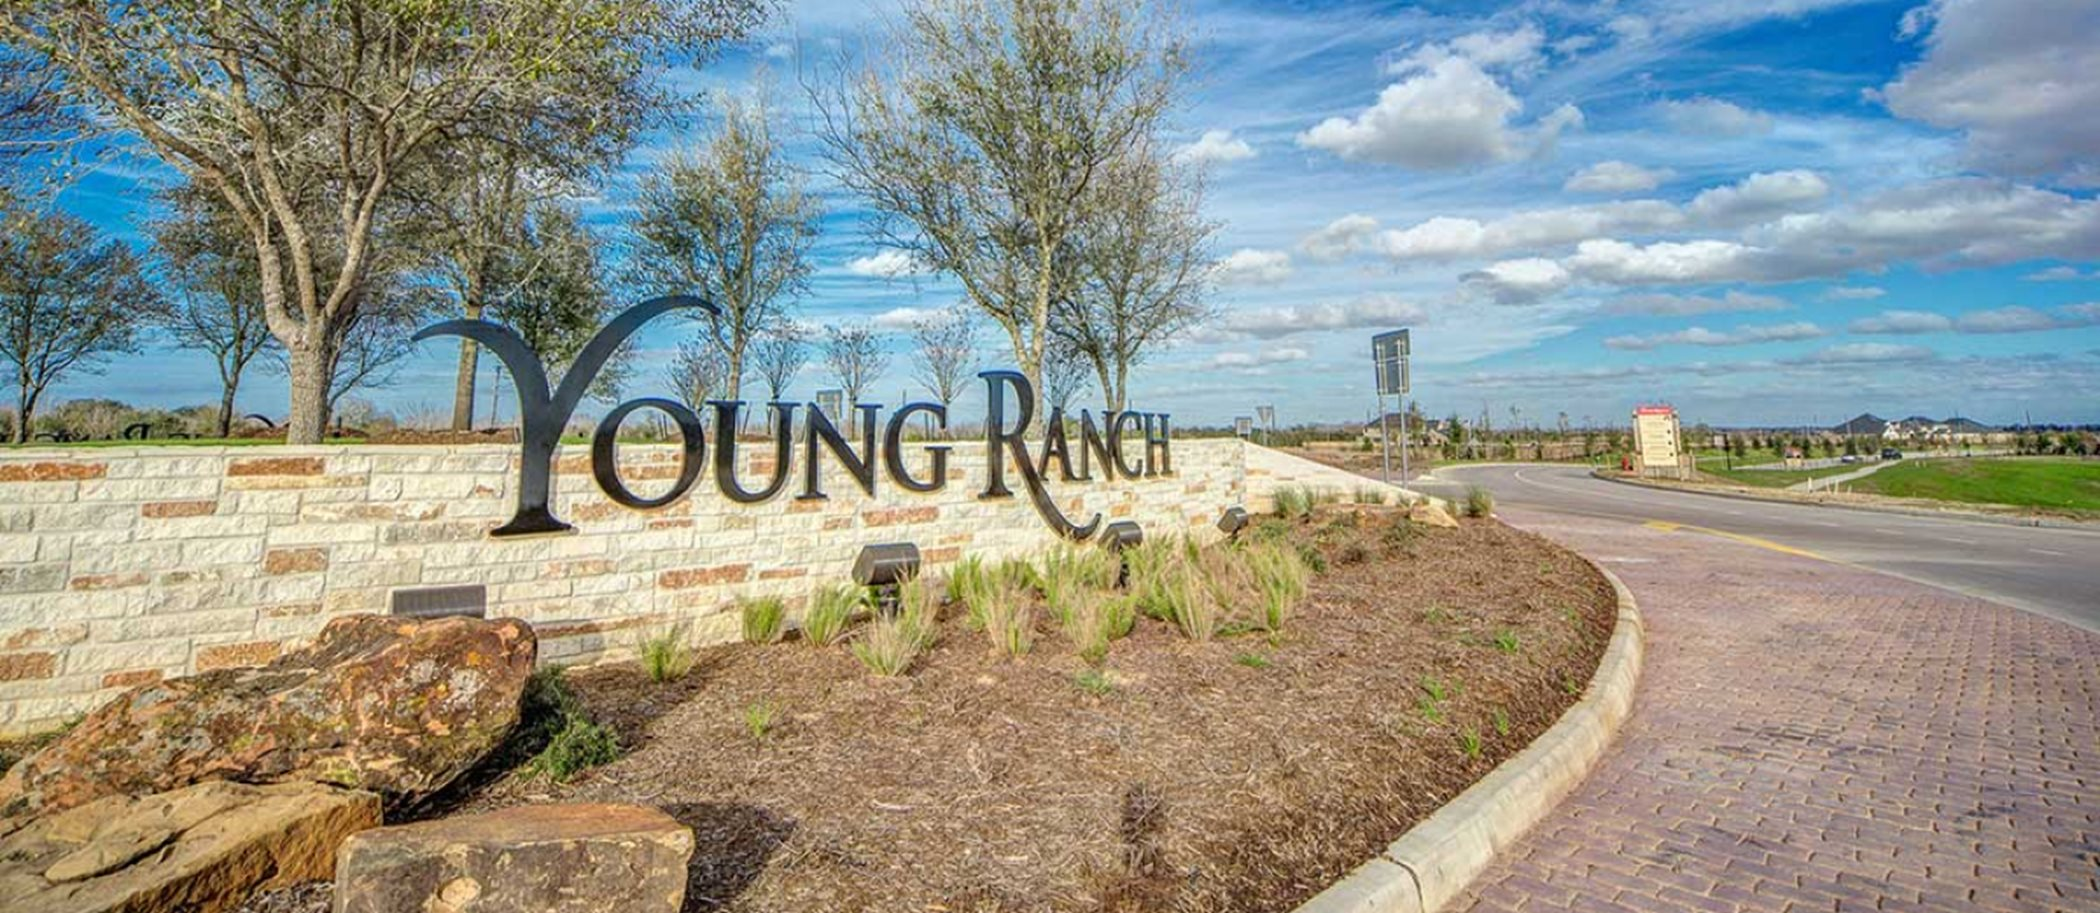 Young Ranch Entrance